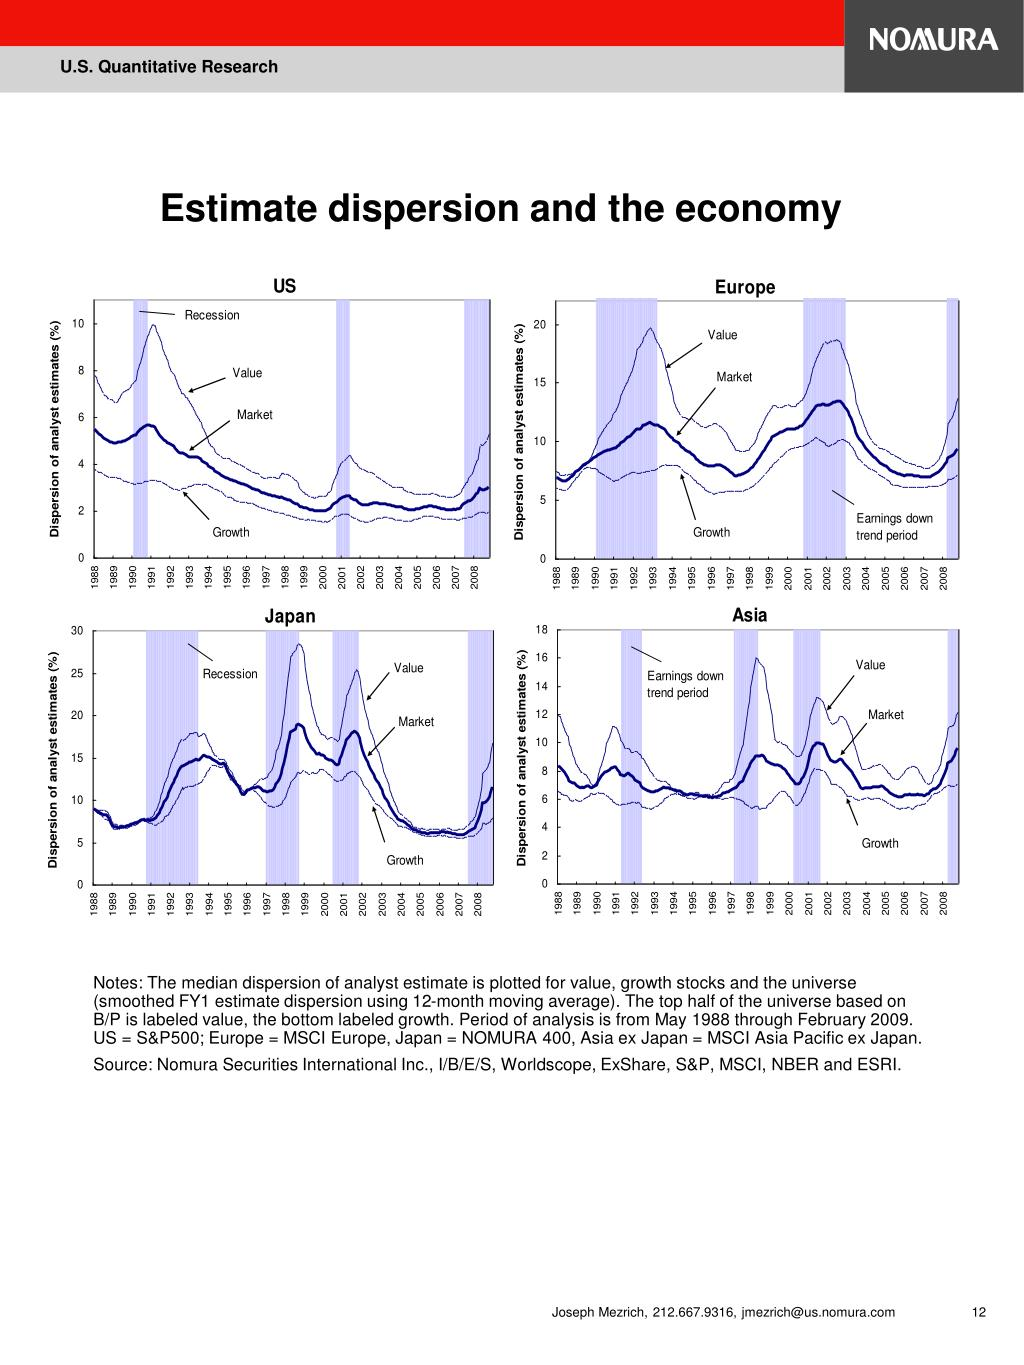 Estimate dispersion and the economy